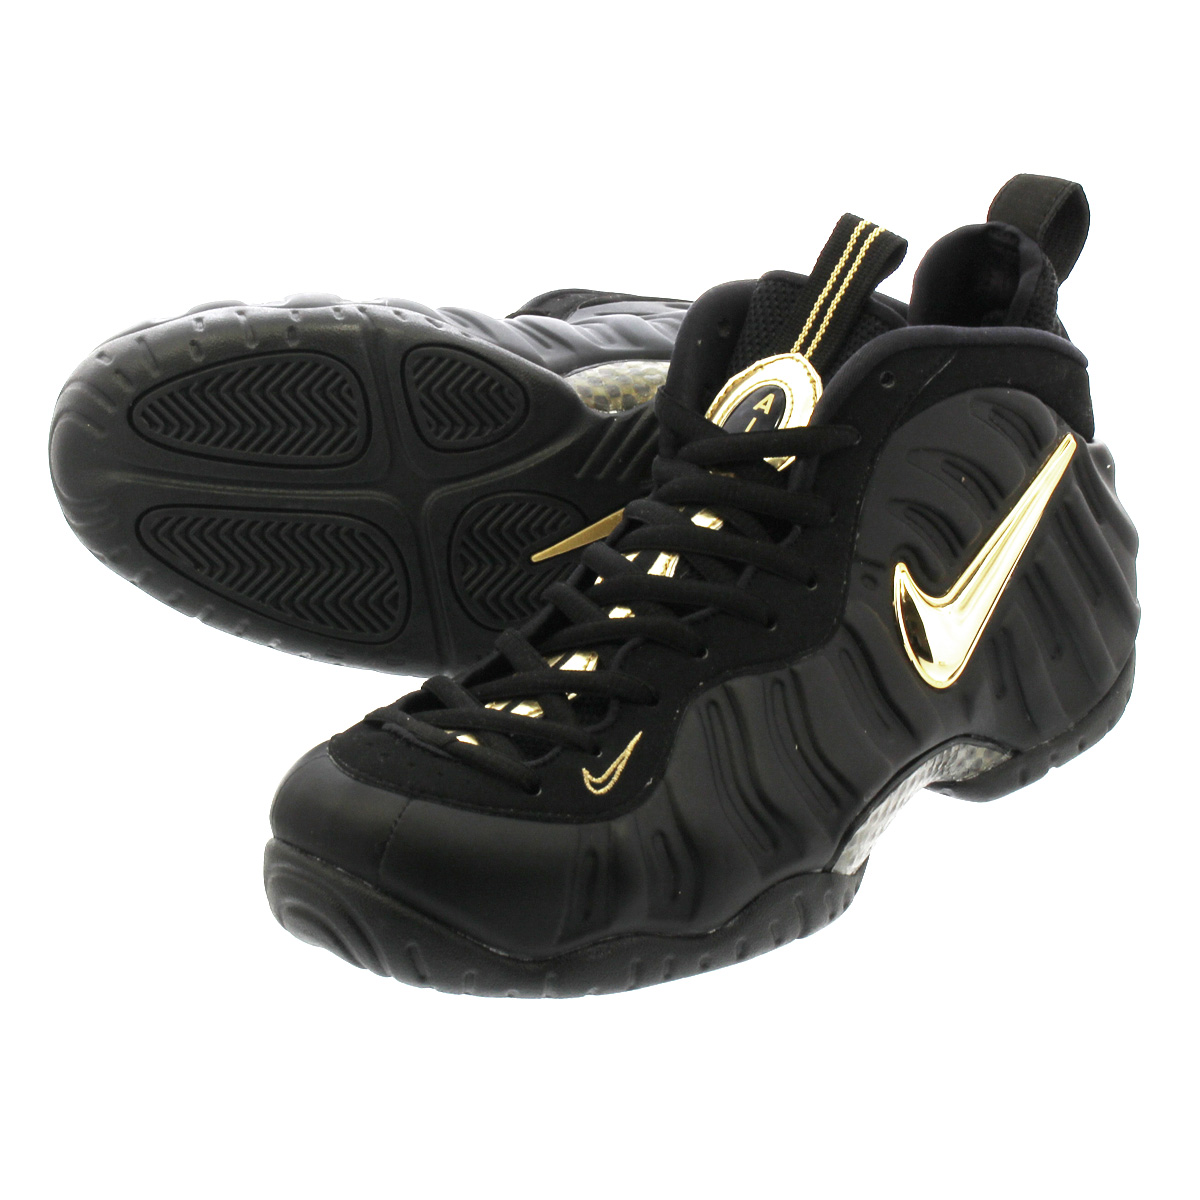 new product 5c806 a4960 NIKE AIR FOAMPOSITE PRO ナイキエアフォームポジットプロ BLACK/METALLIC GOLD 624,041-009